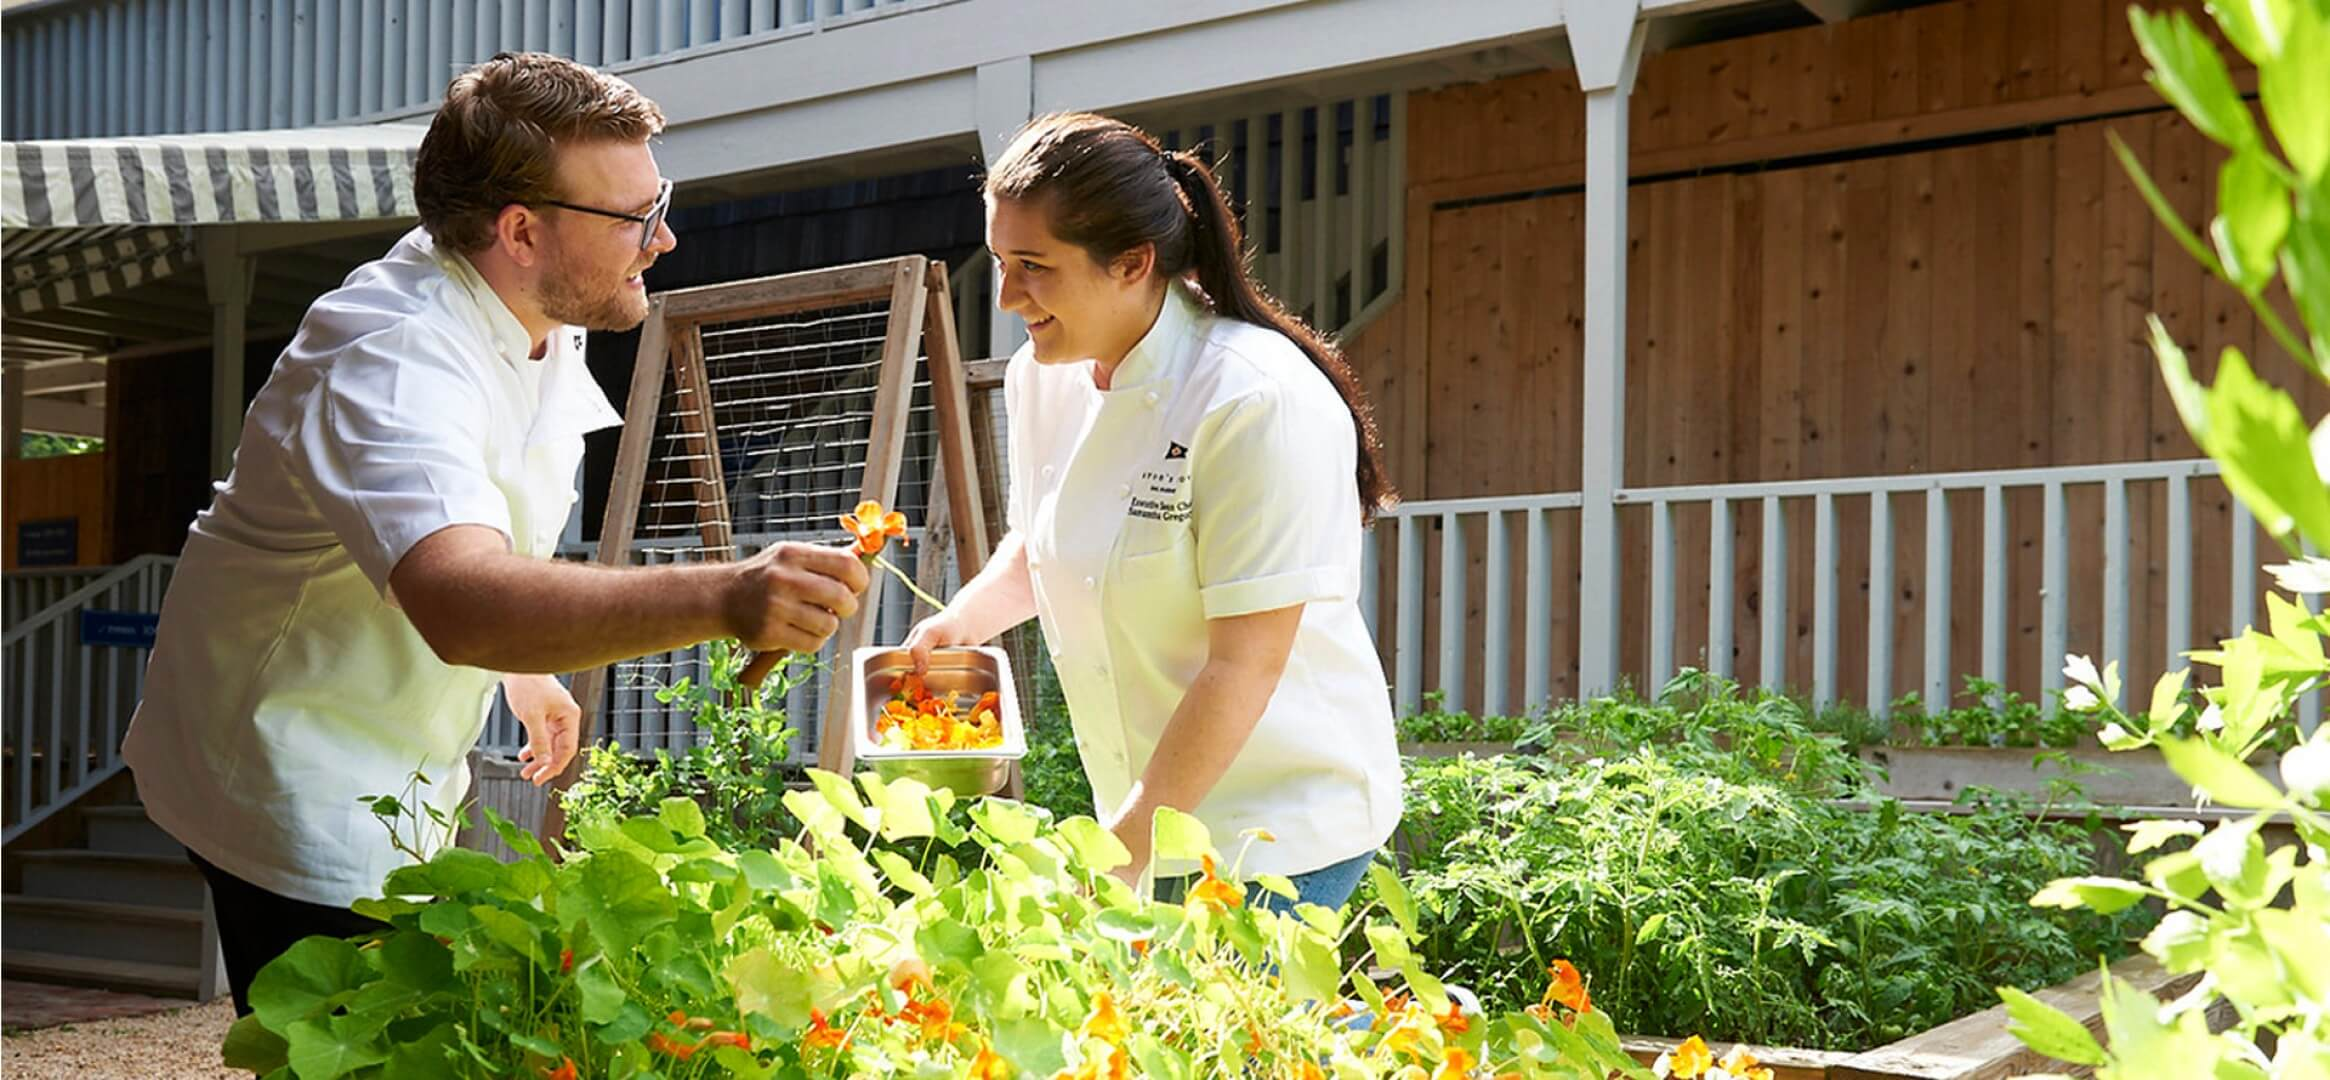 Chef Nicholas and Chef Samantha in the garden at Baron's Cove